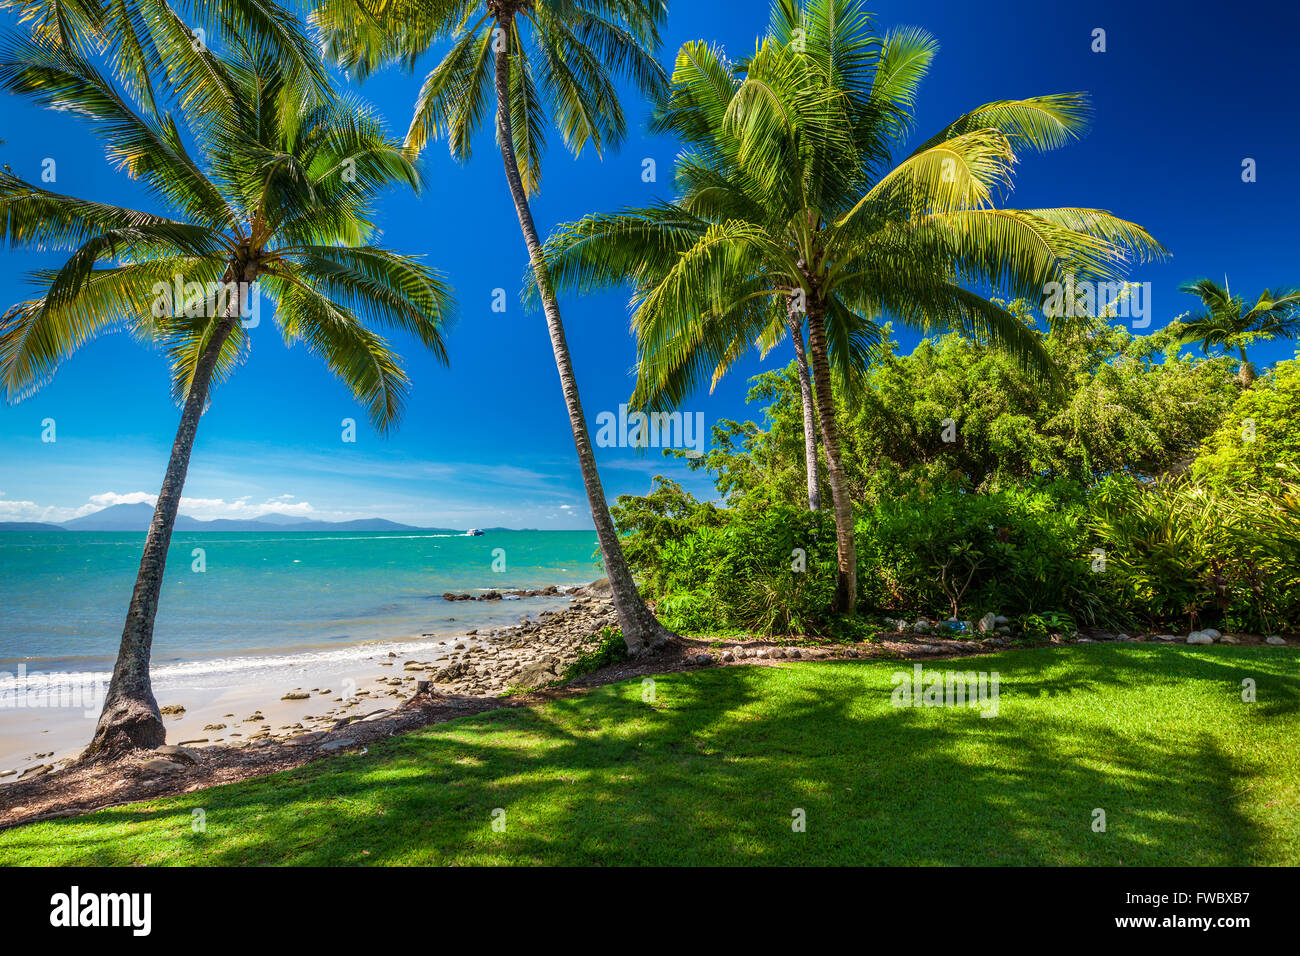 Rex Smeal Park in Port Douglas with tropical palm trees and beach, Australia - Stock Image